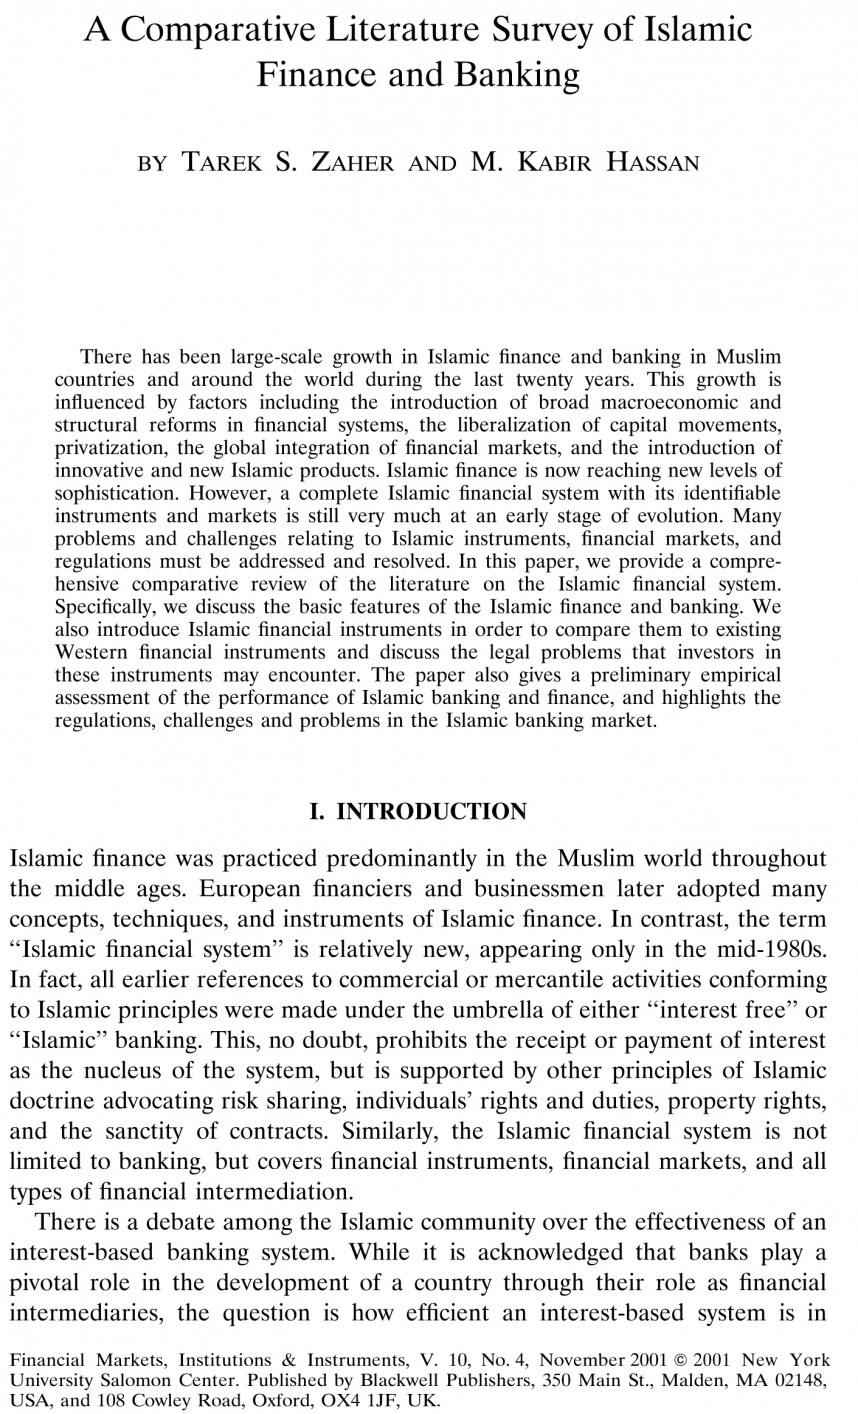 005 Research Paper Literary Topics List Comparative Literature Free Sample Archaicawful